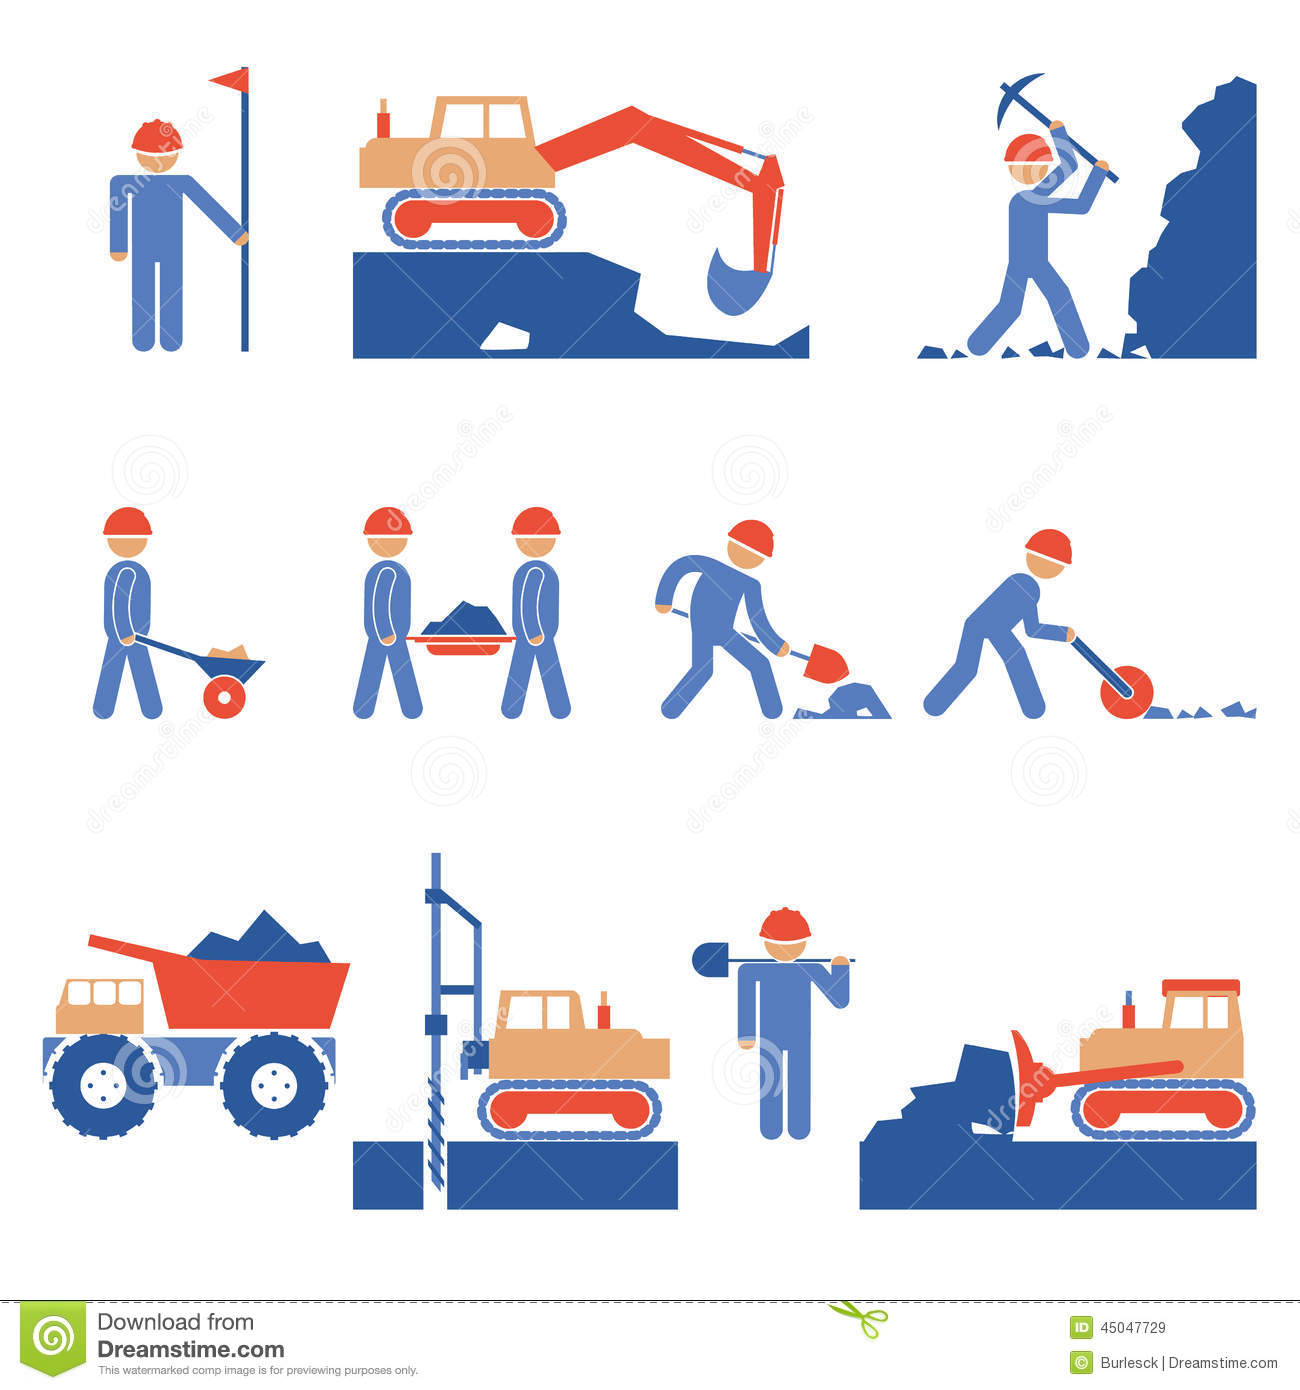 Earthwork Construction Management : Earthwork and road construction icons stock vector image